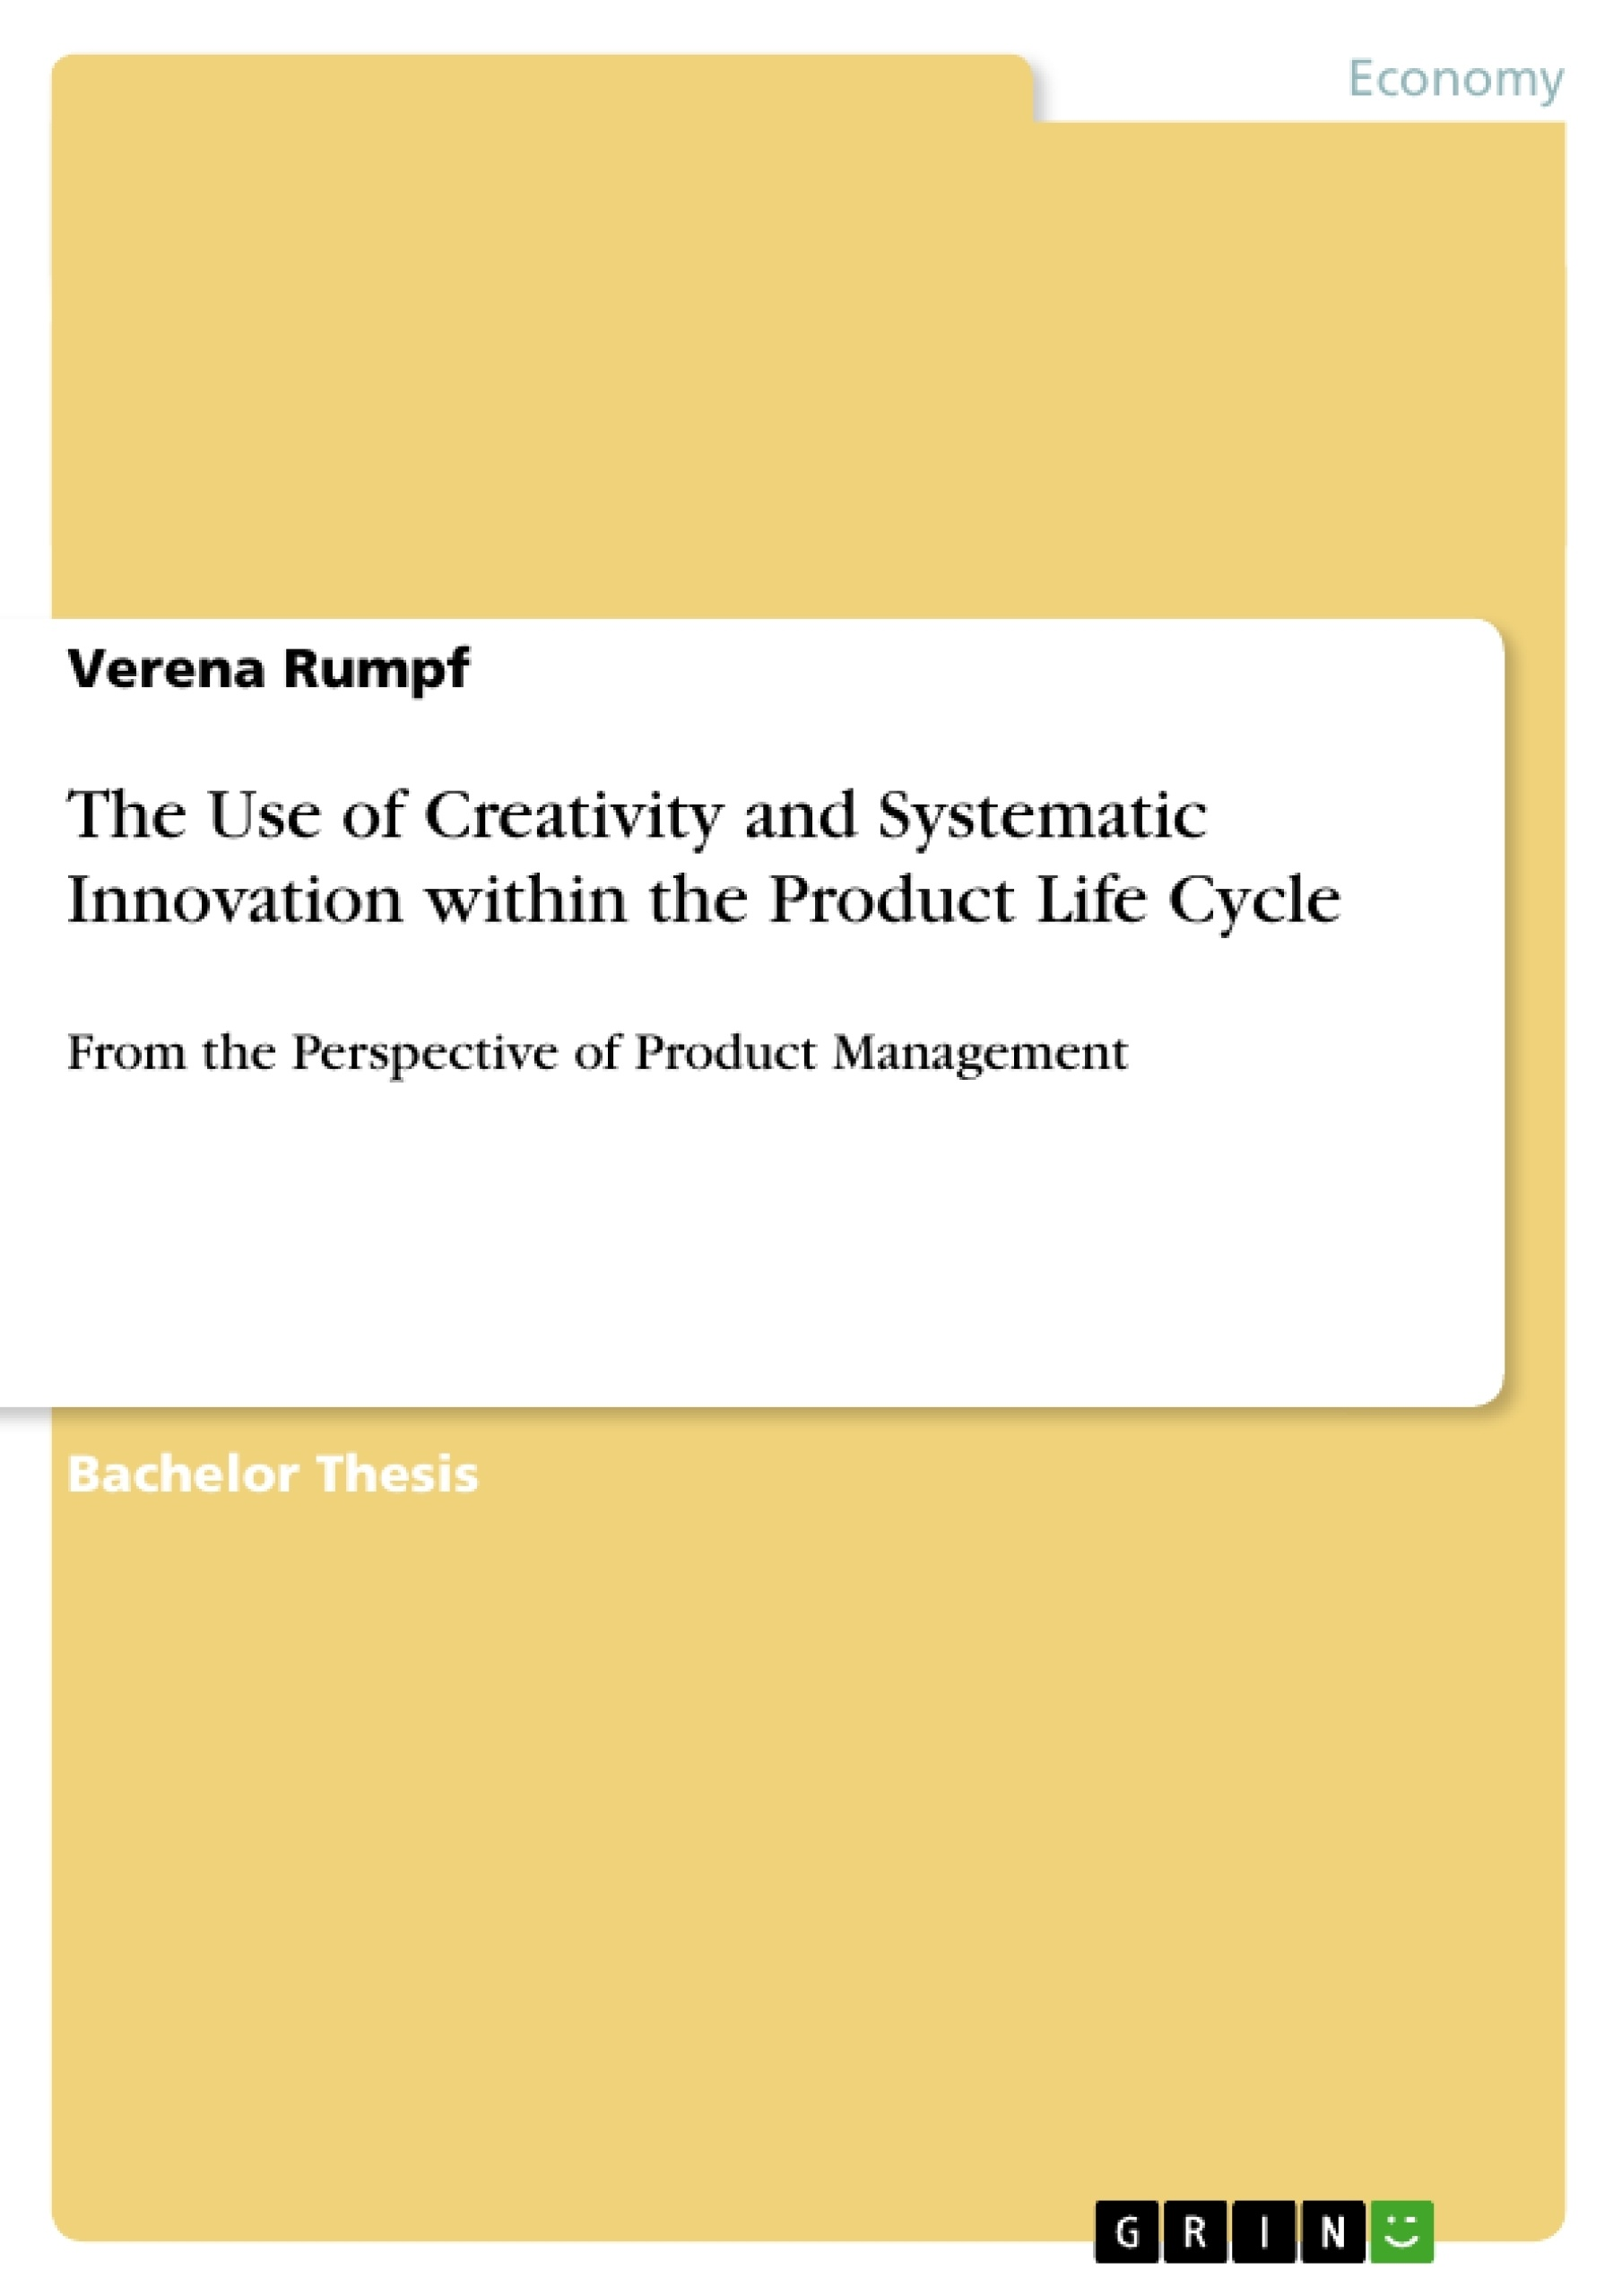 product life cycle essay that eye the sky essay the use of  the use of creativity and systematic innovation in the product the use of creativity and systematic